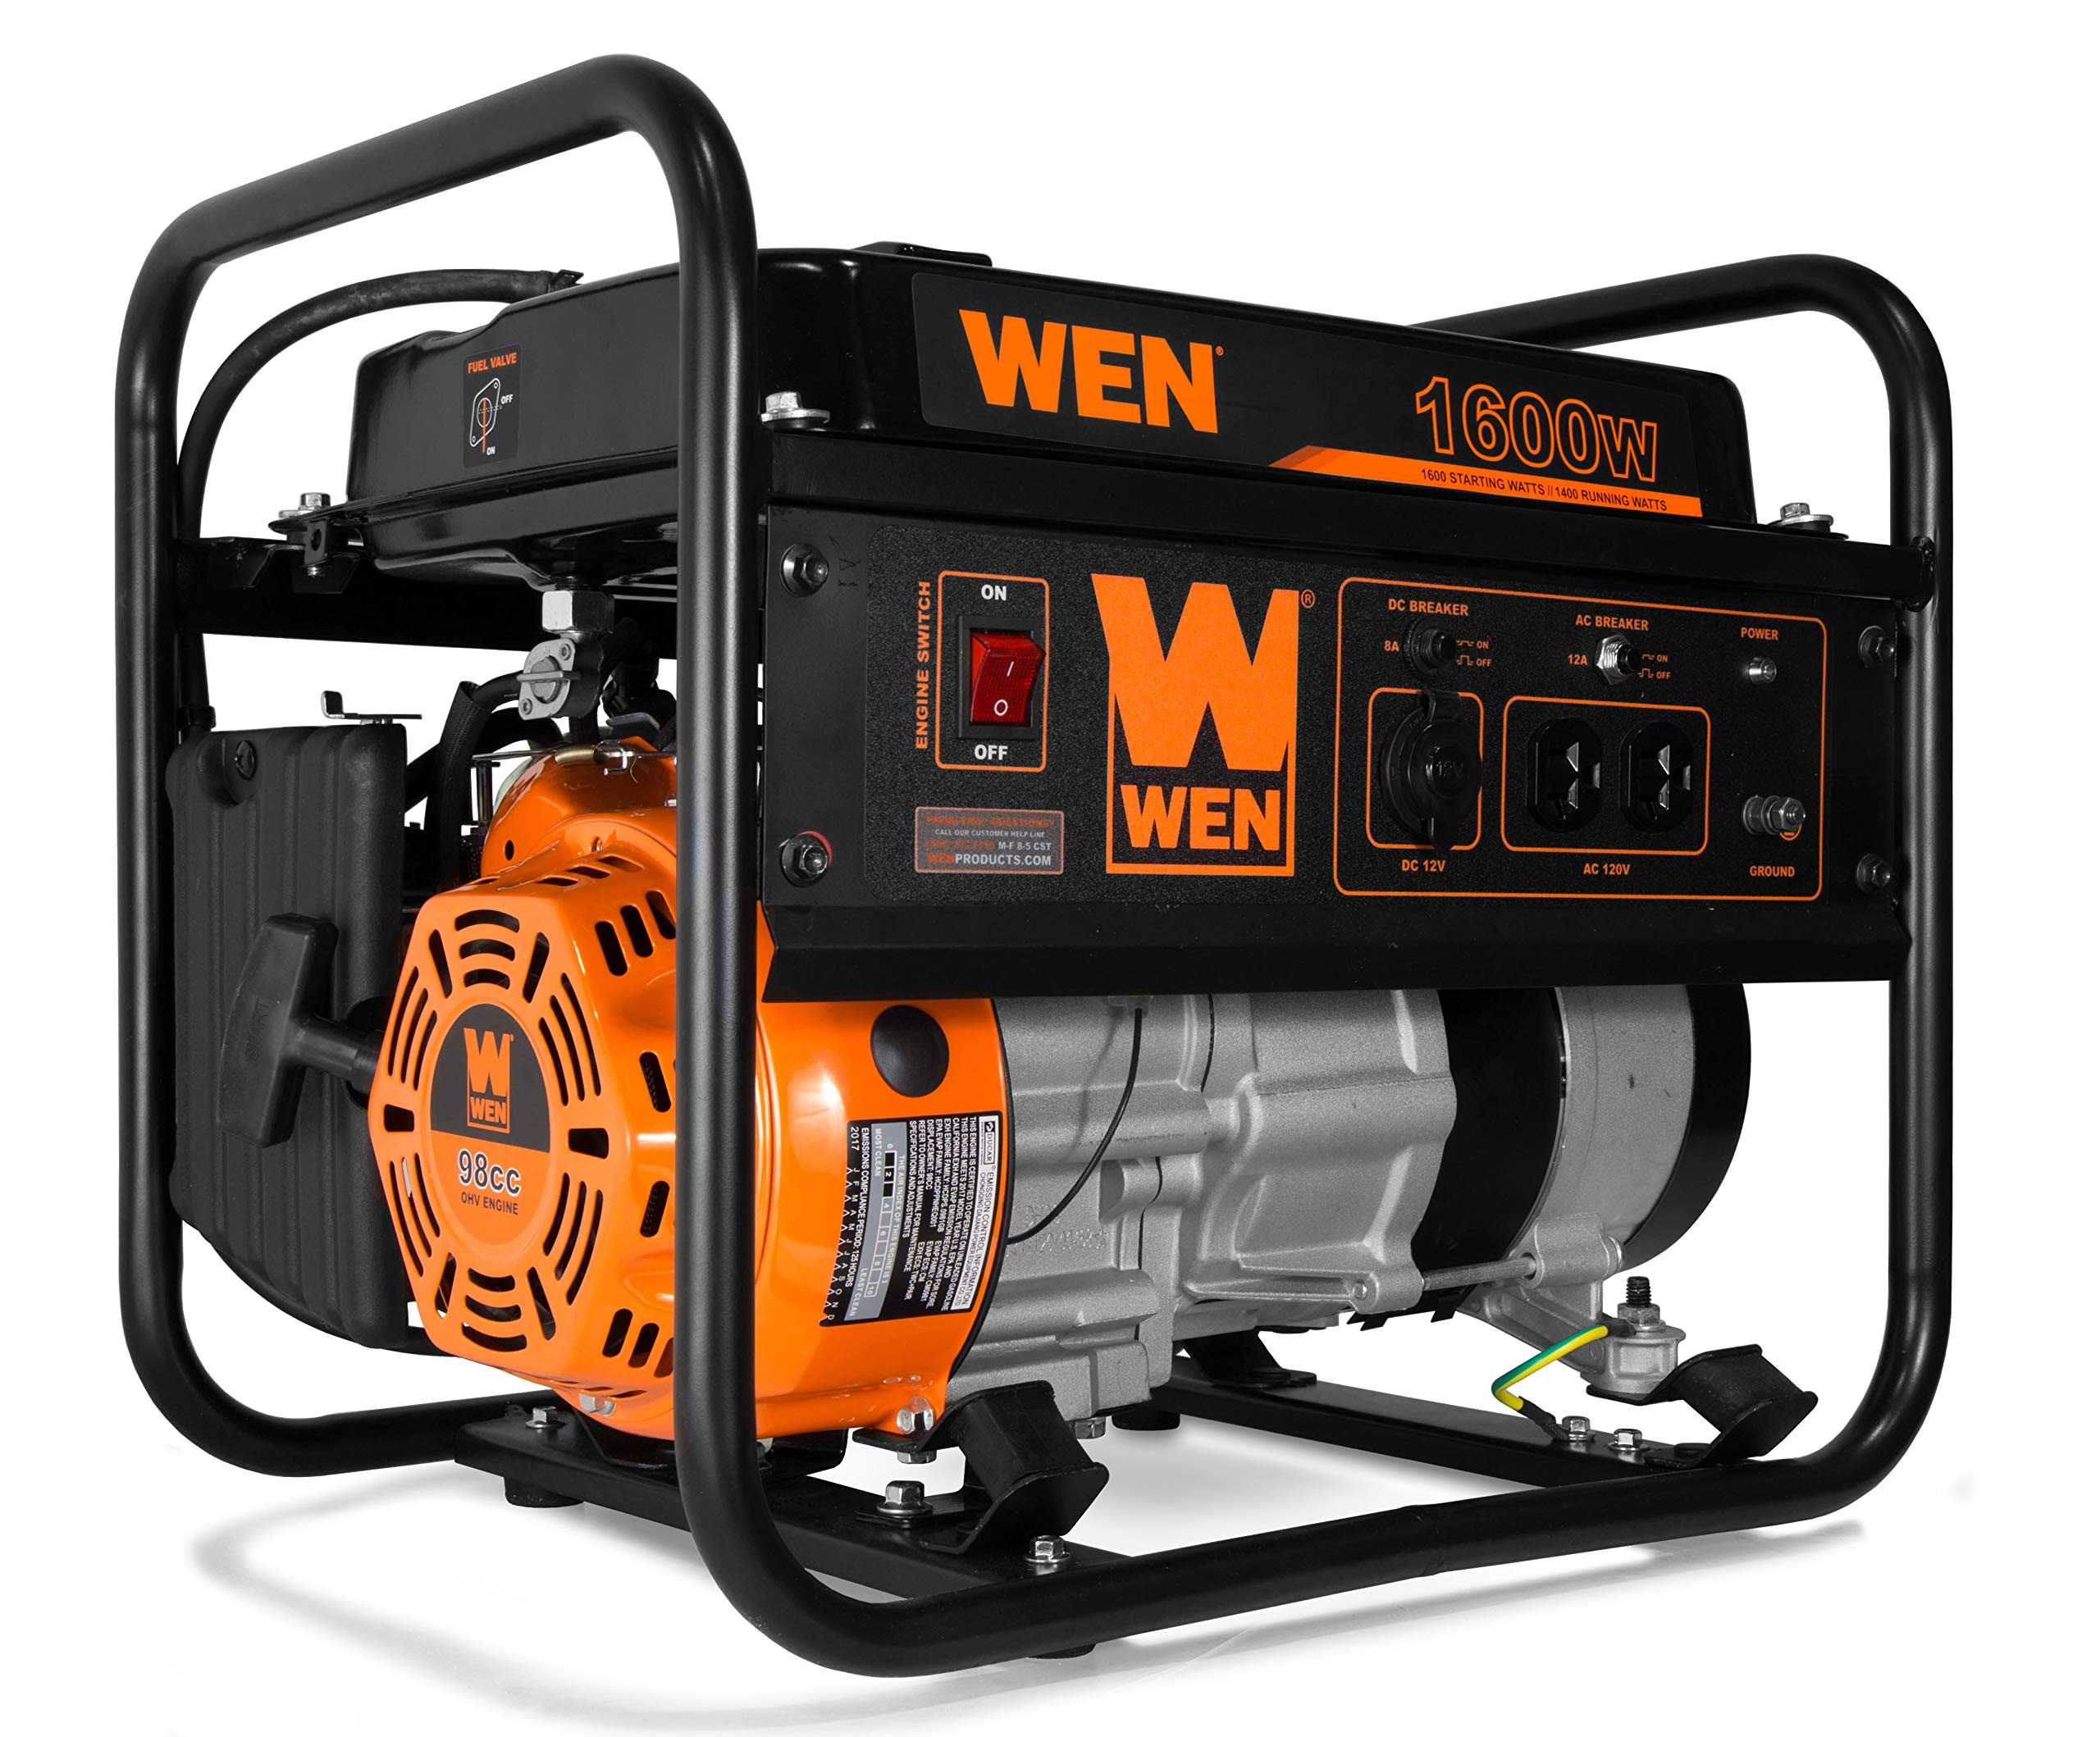 WEN 56160 4-Stroke 98cc 1600-Watt Portable Power Generator, CARB Compliant